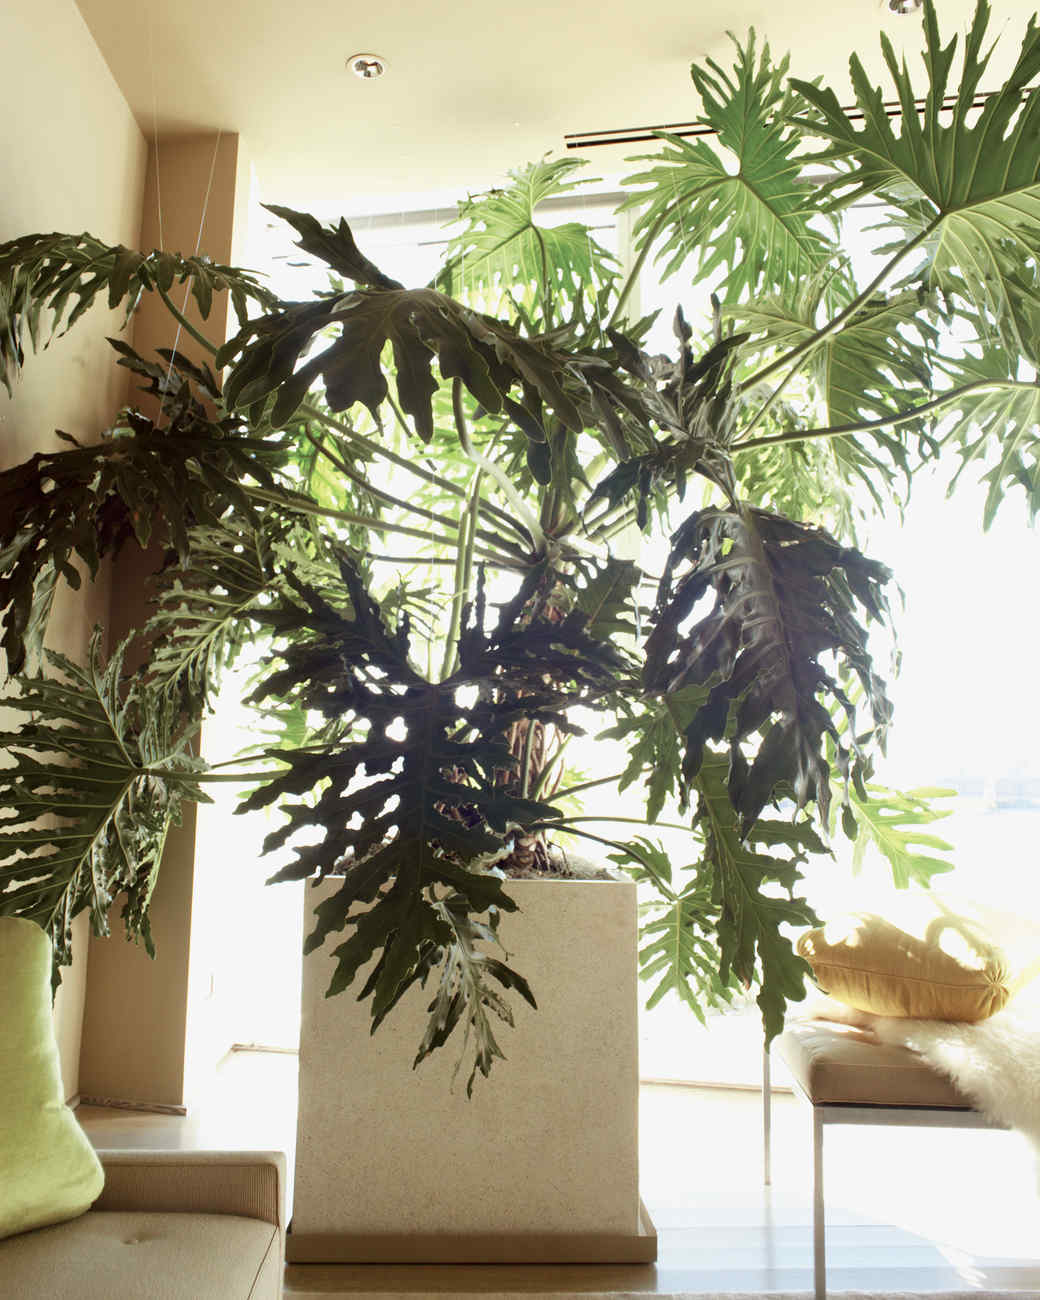 Kevin's Houseplant Ideas And Care Tips